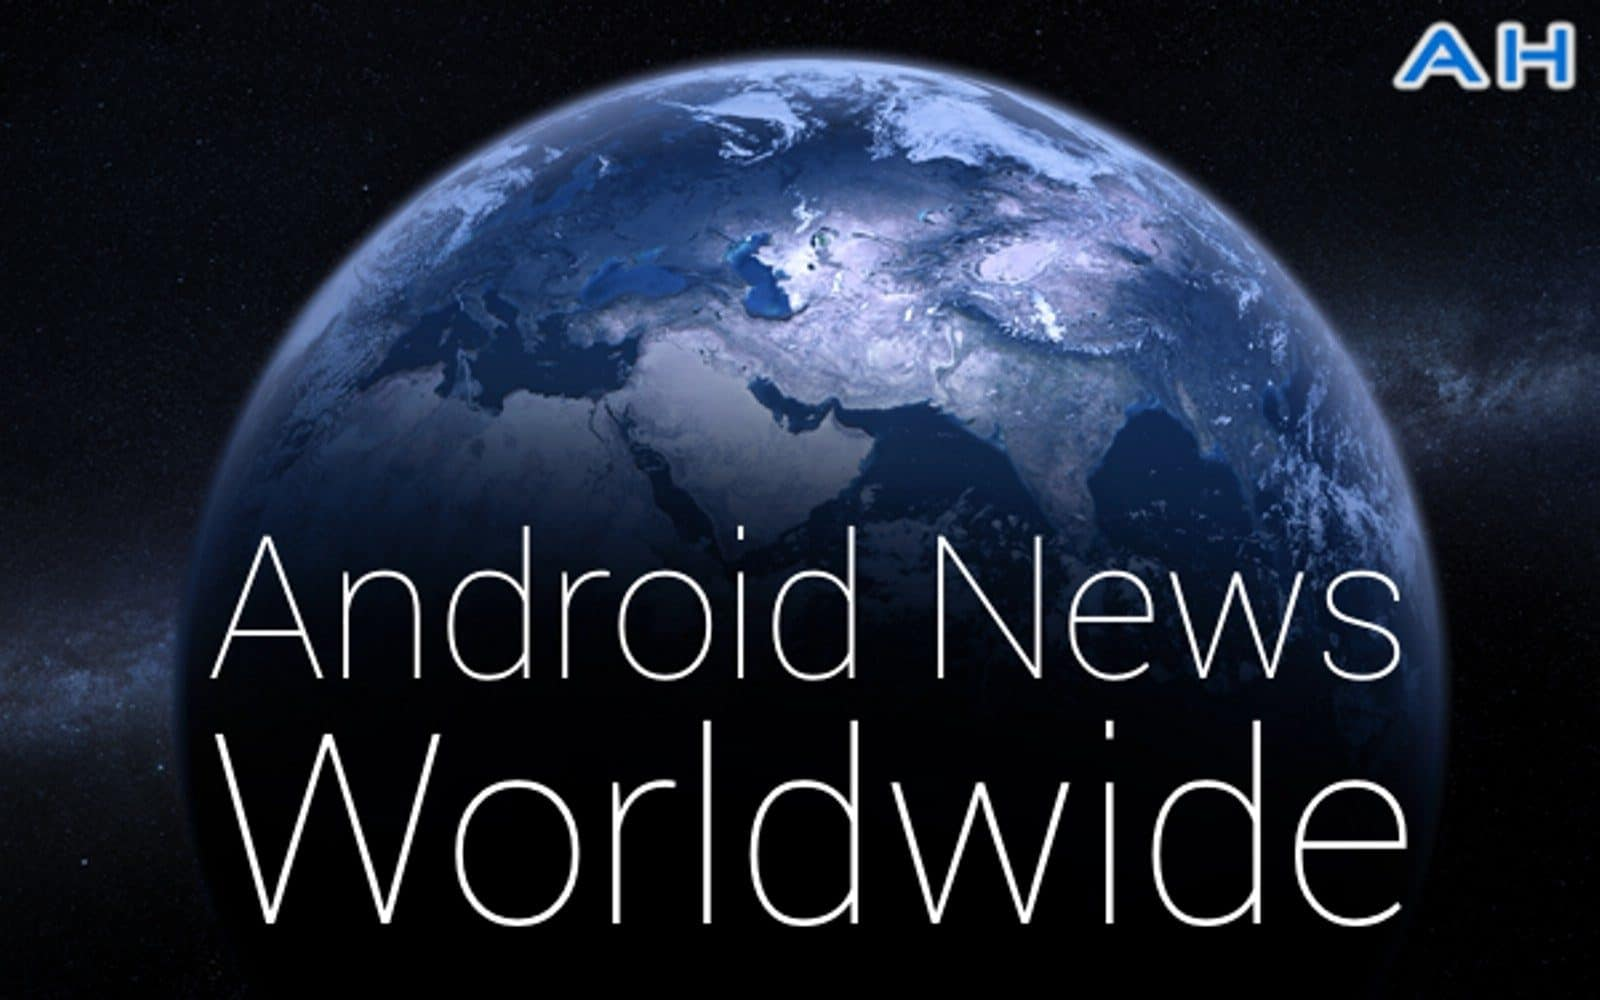 AH Android News Worlwide 1.0 Big